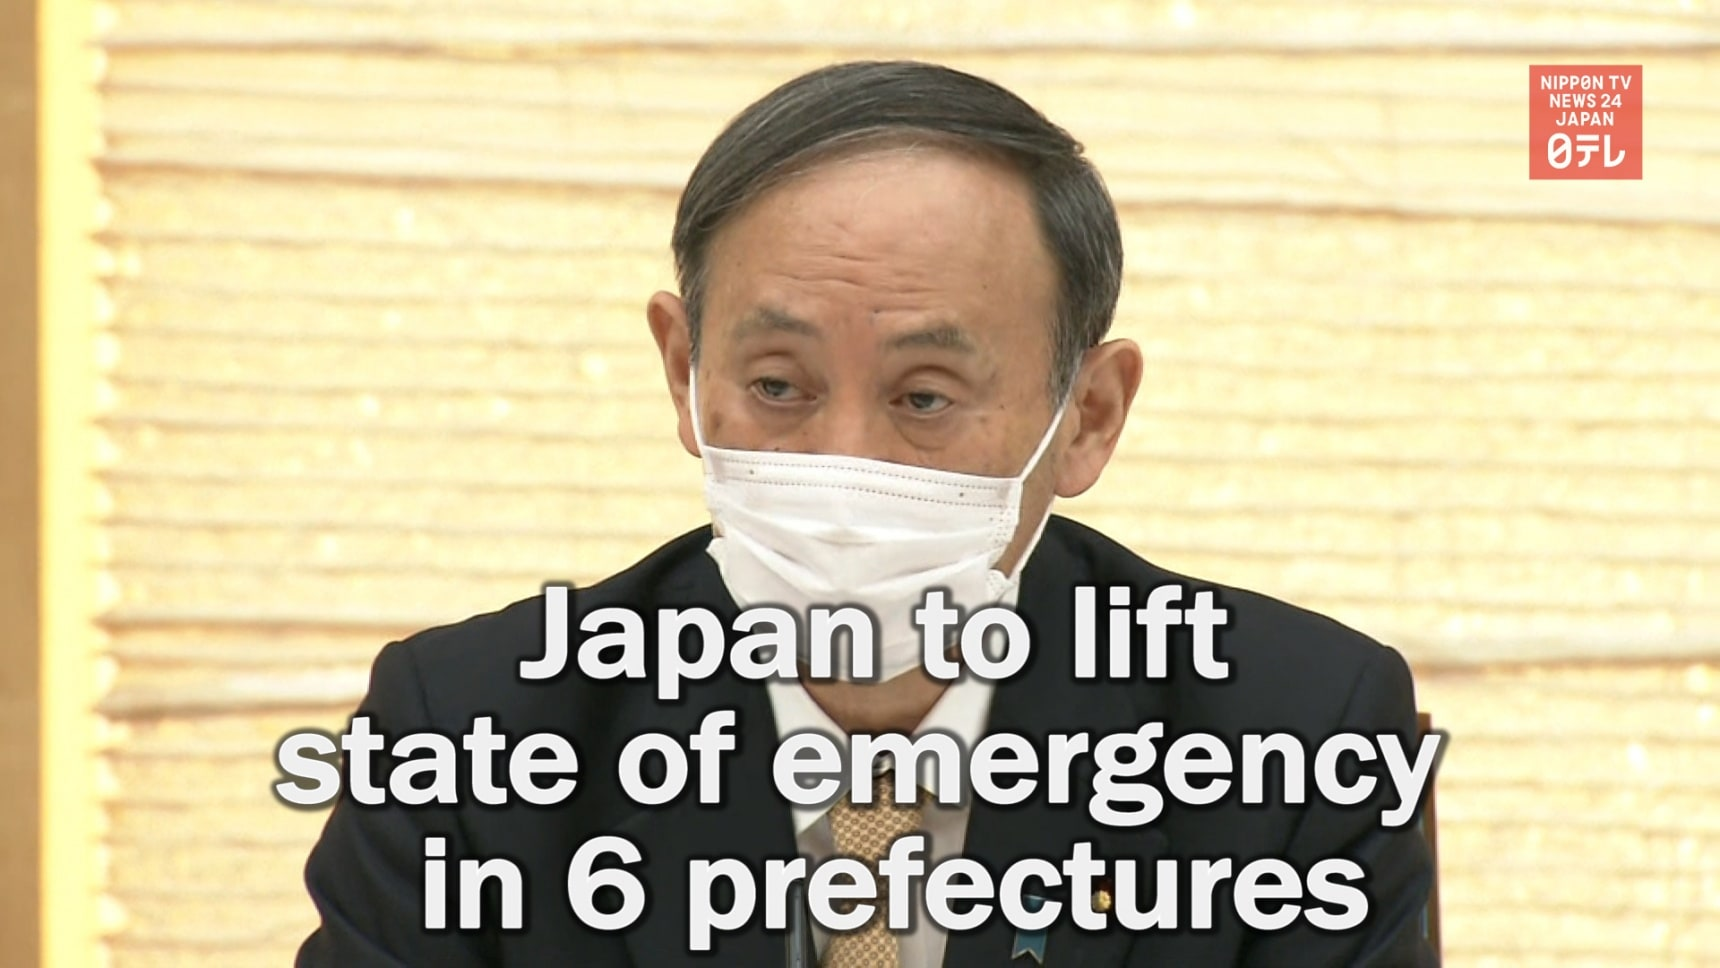 State of Emergency Lifted in 6 Prefectures